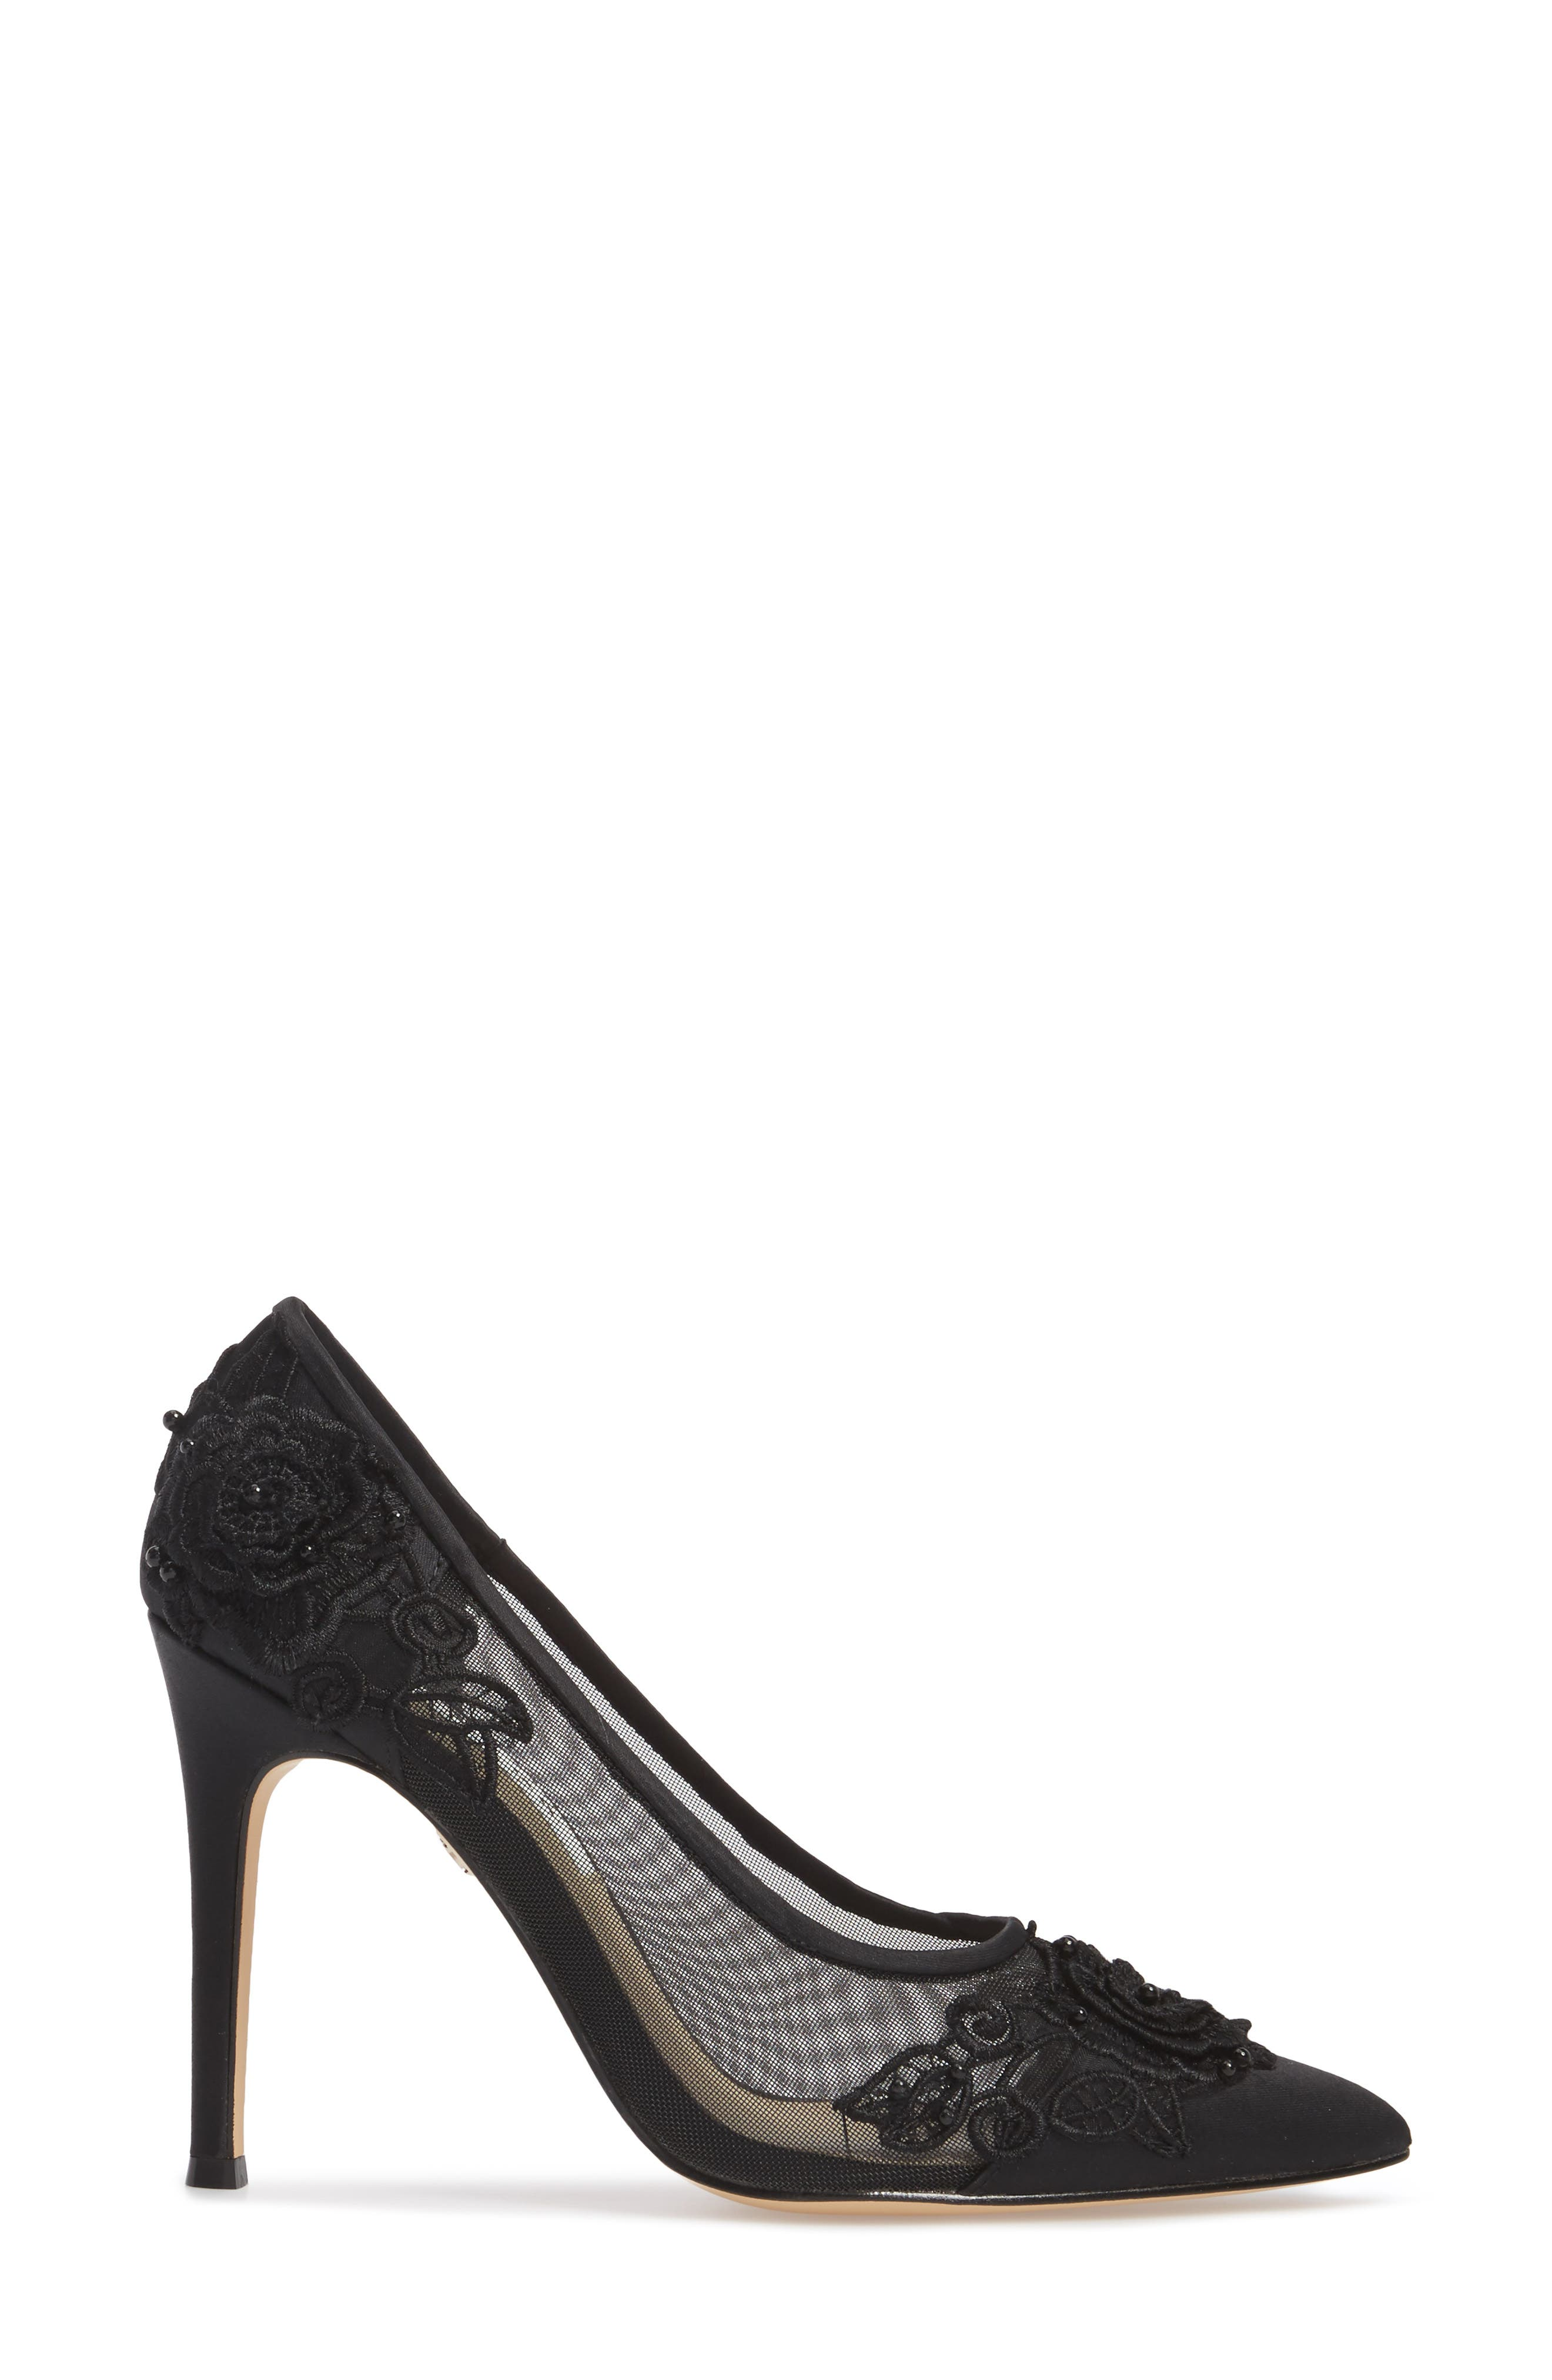 Donela Pump,                             Alternate thumbnail 3, color,                             Black Satin